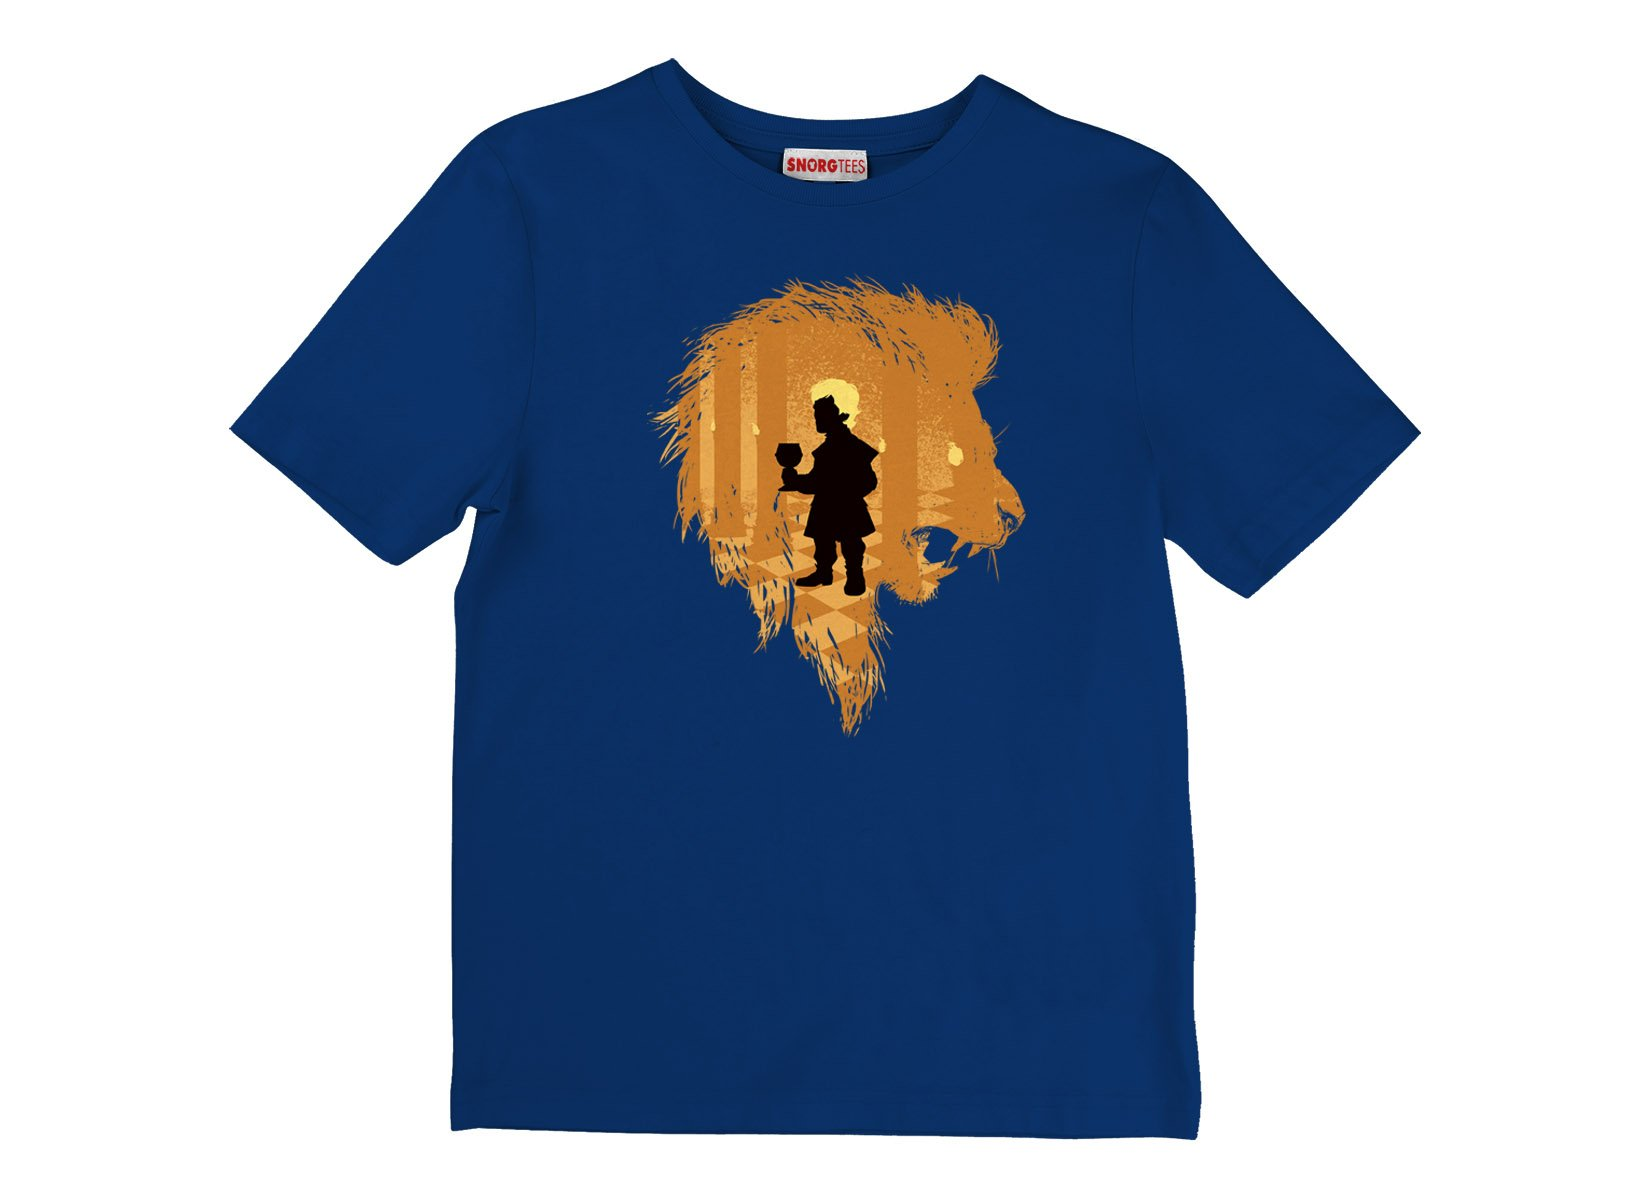 The Lion on Kids T-Shirt